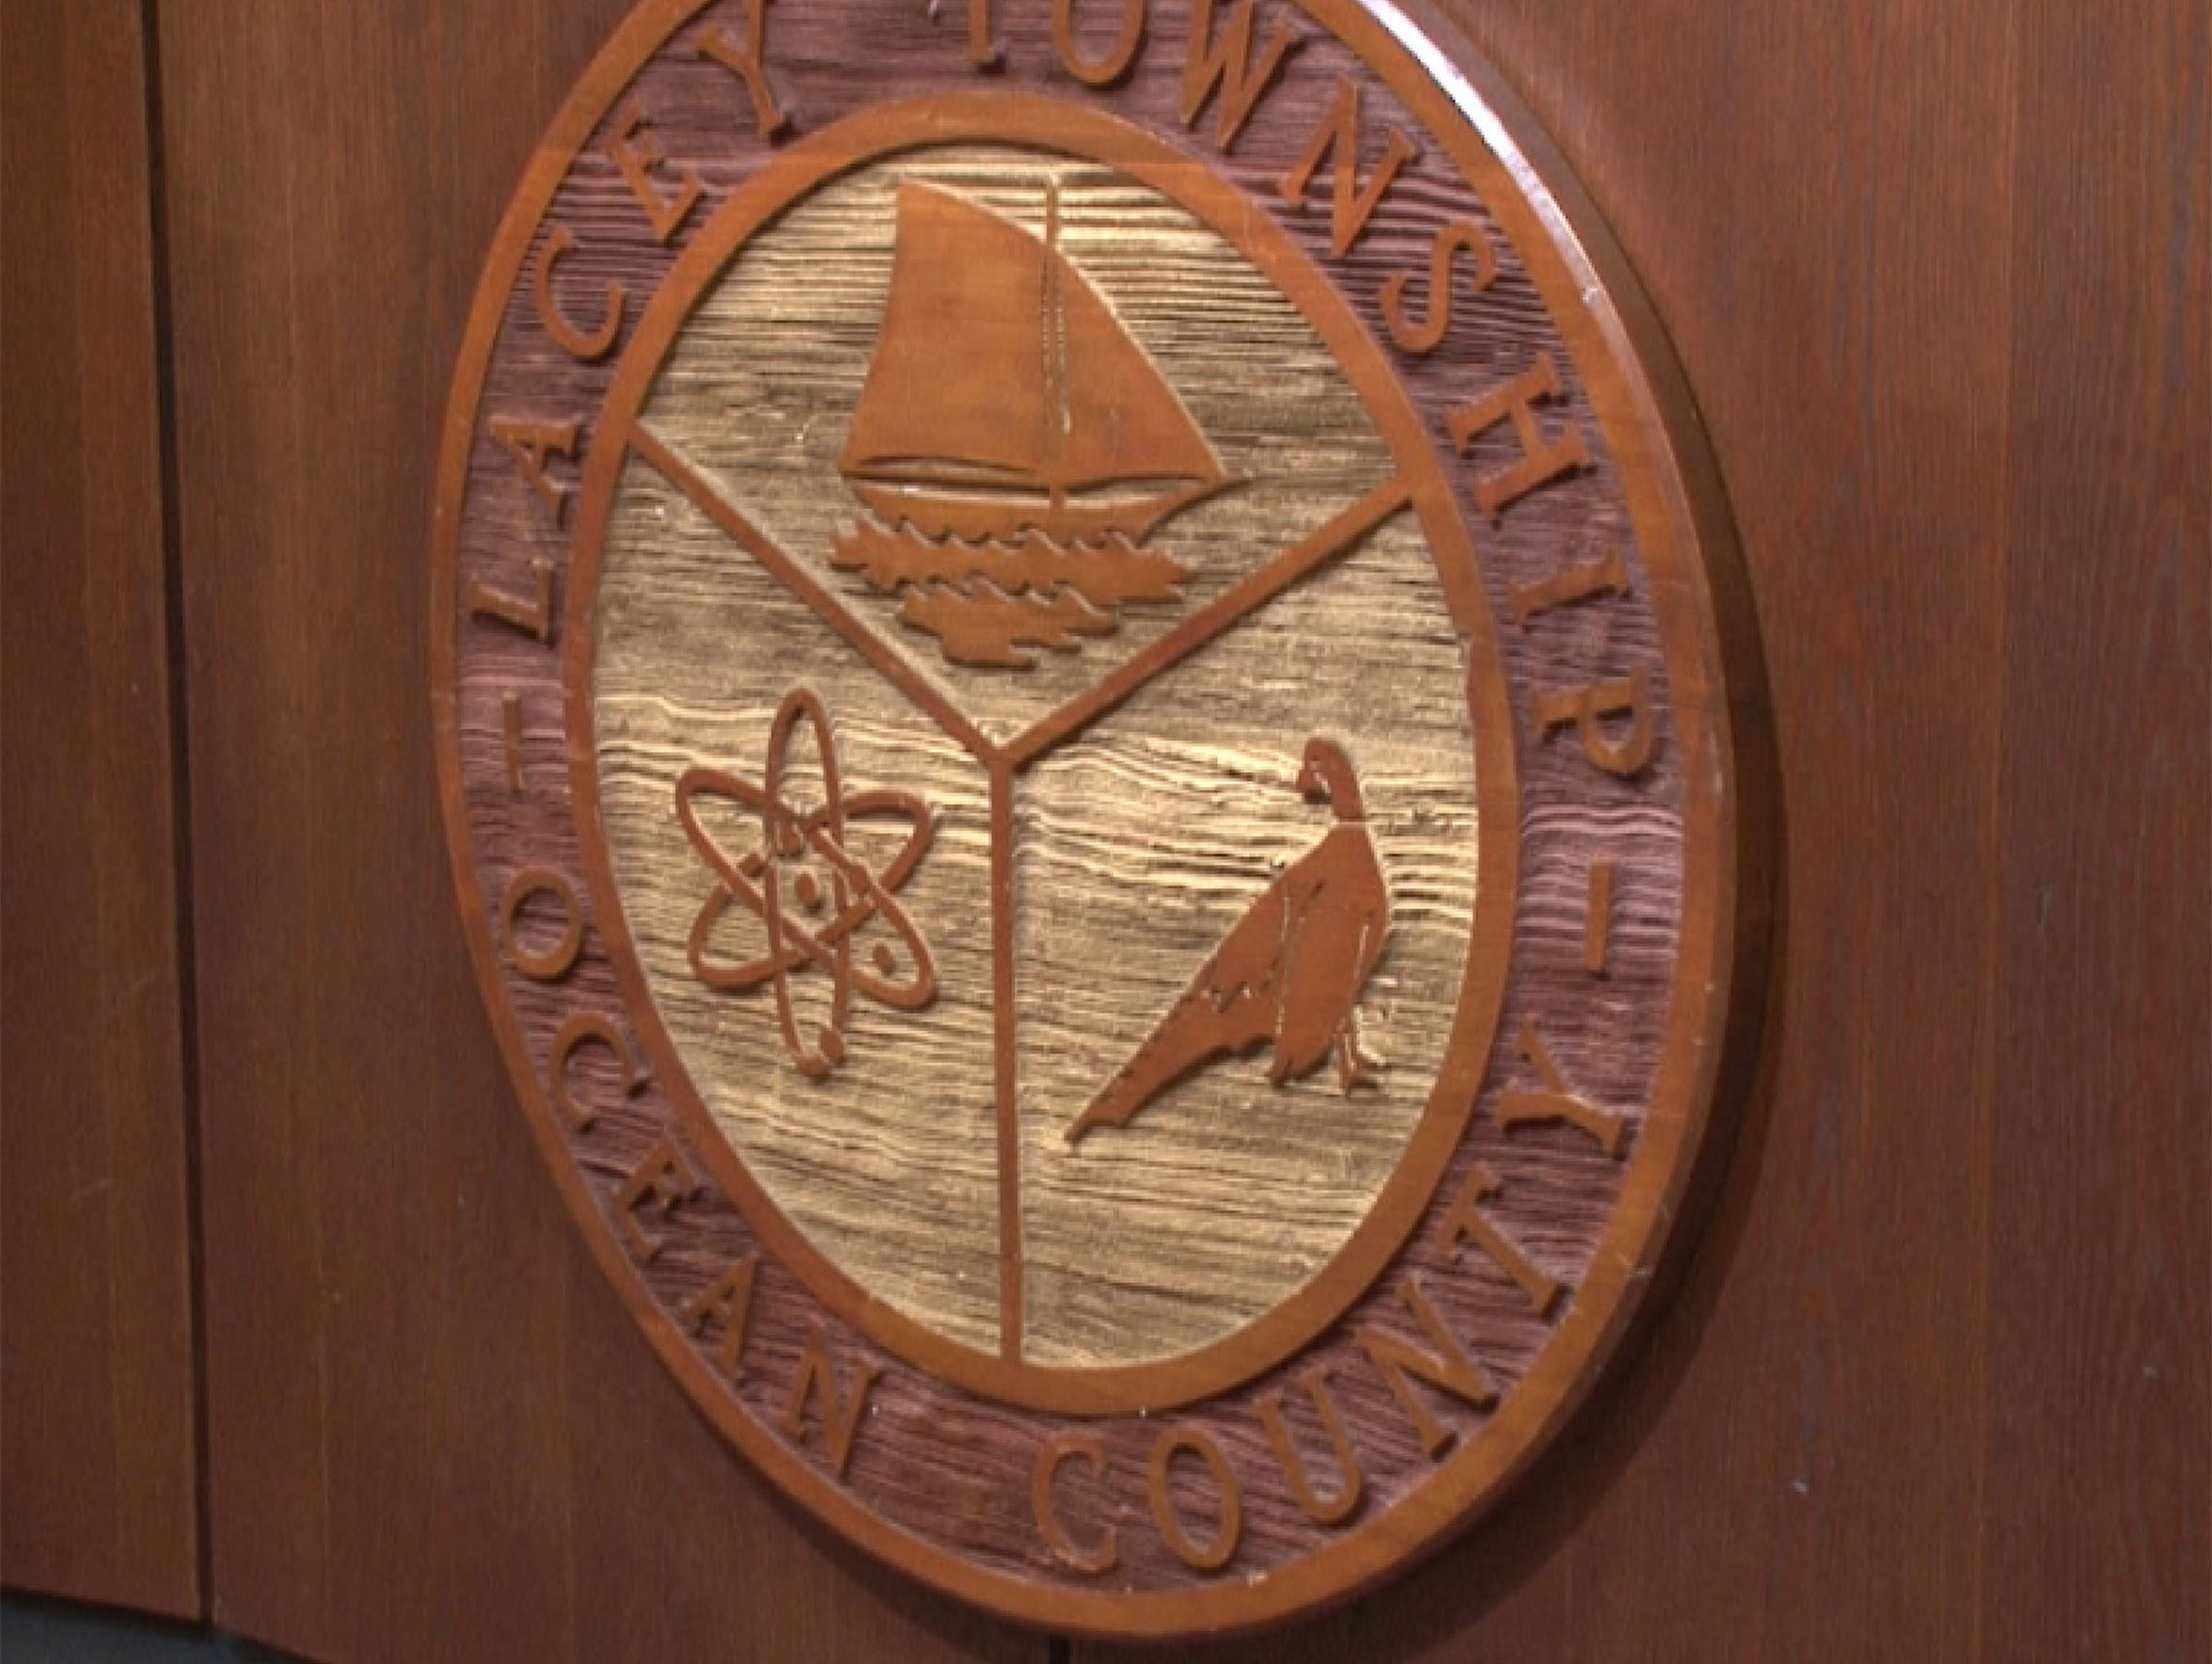 The Lacey Township seal in the meeting room in Town